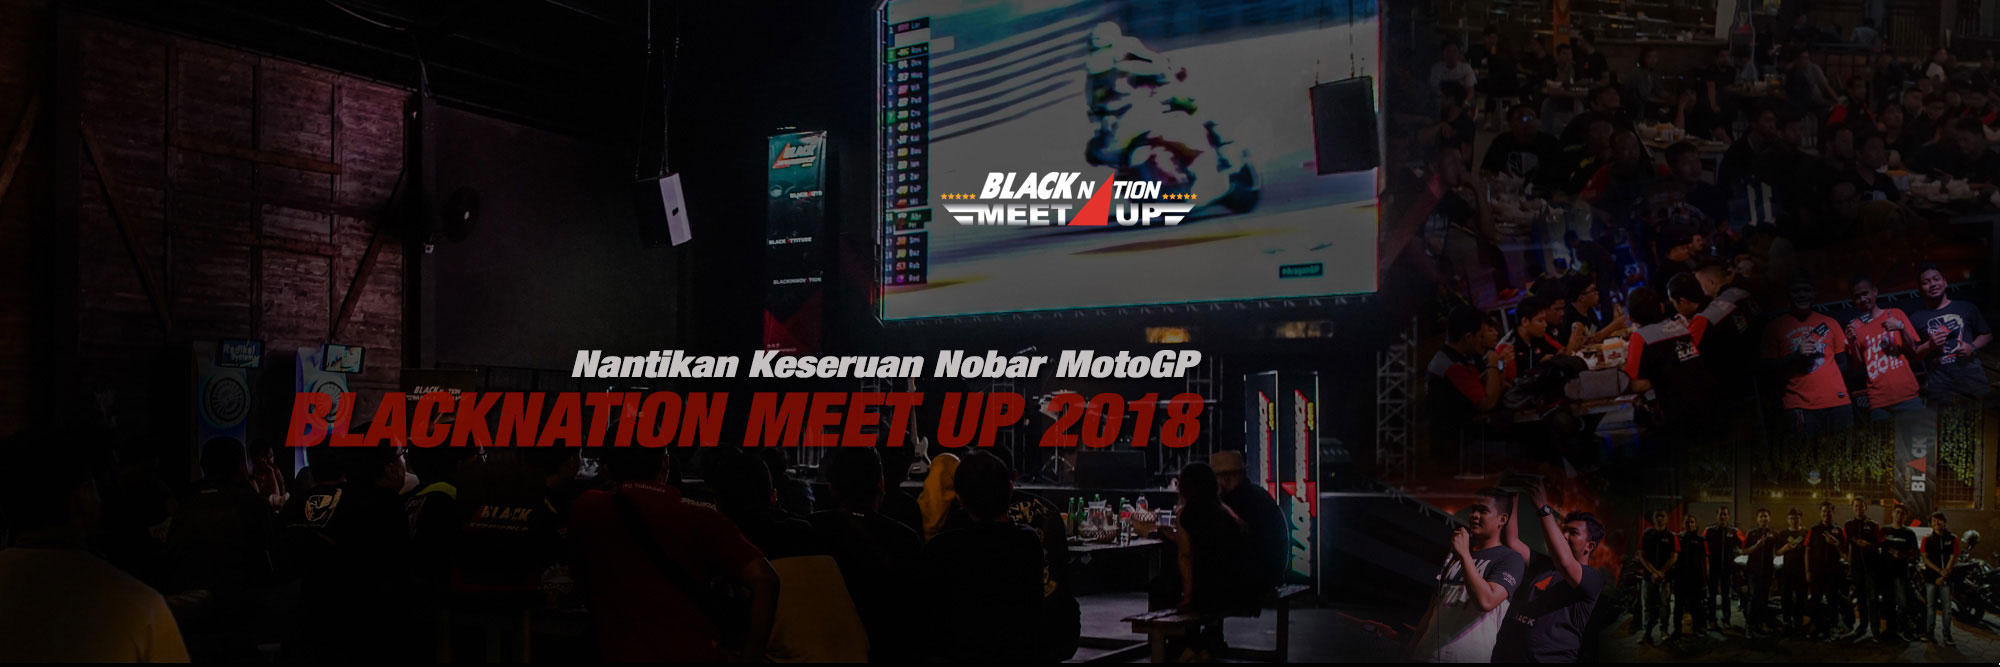 Nantikan Keseruan Nobar MotoGP di BLACKNATION MEET UP 2018